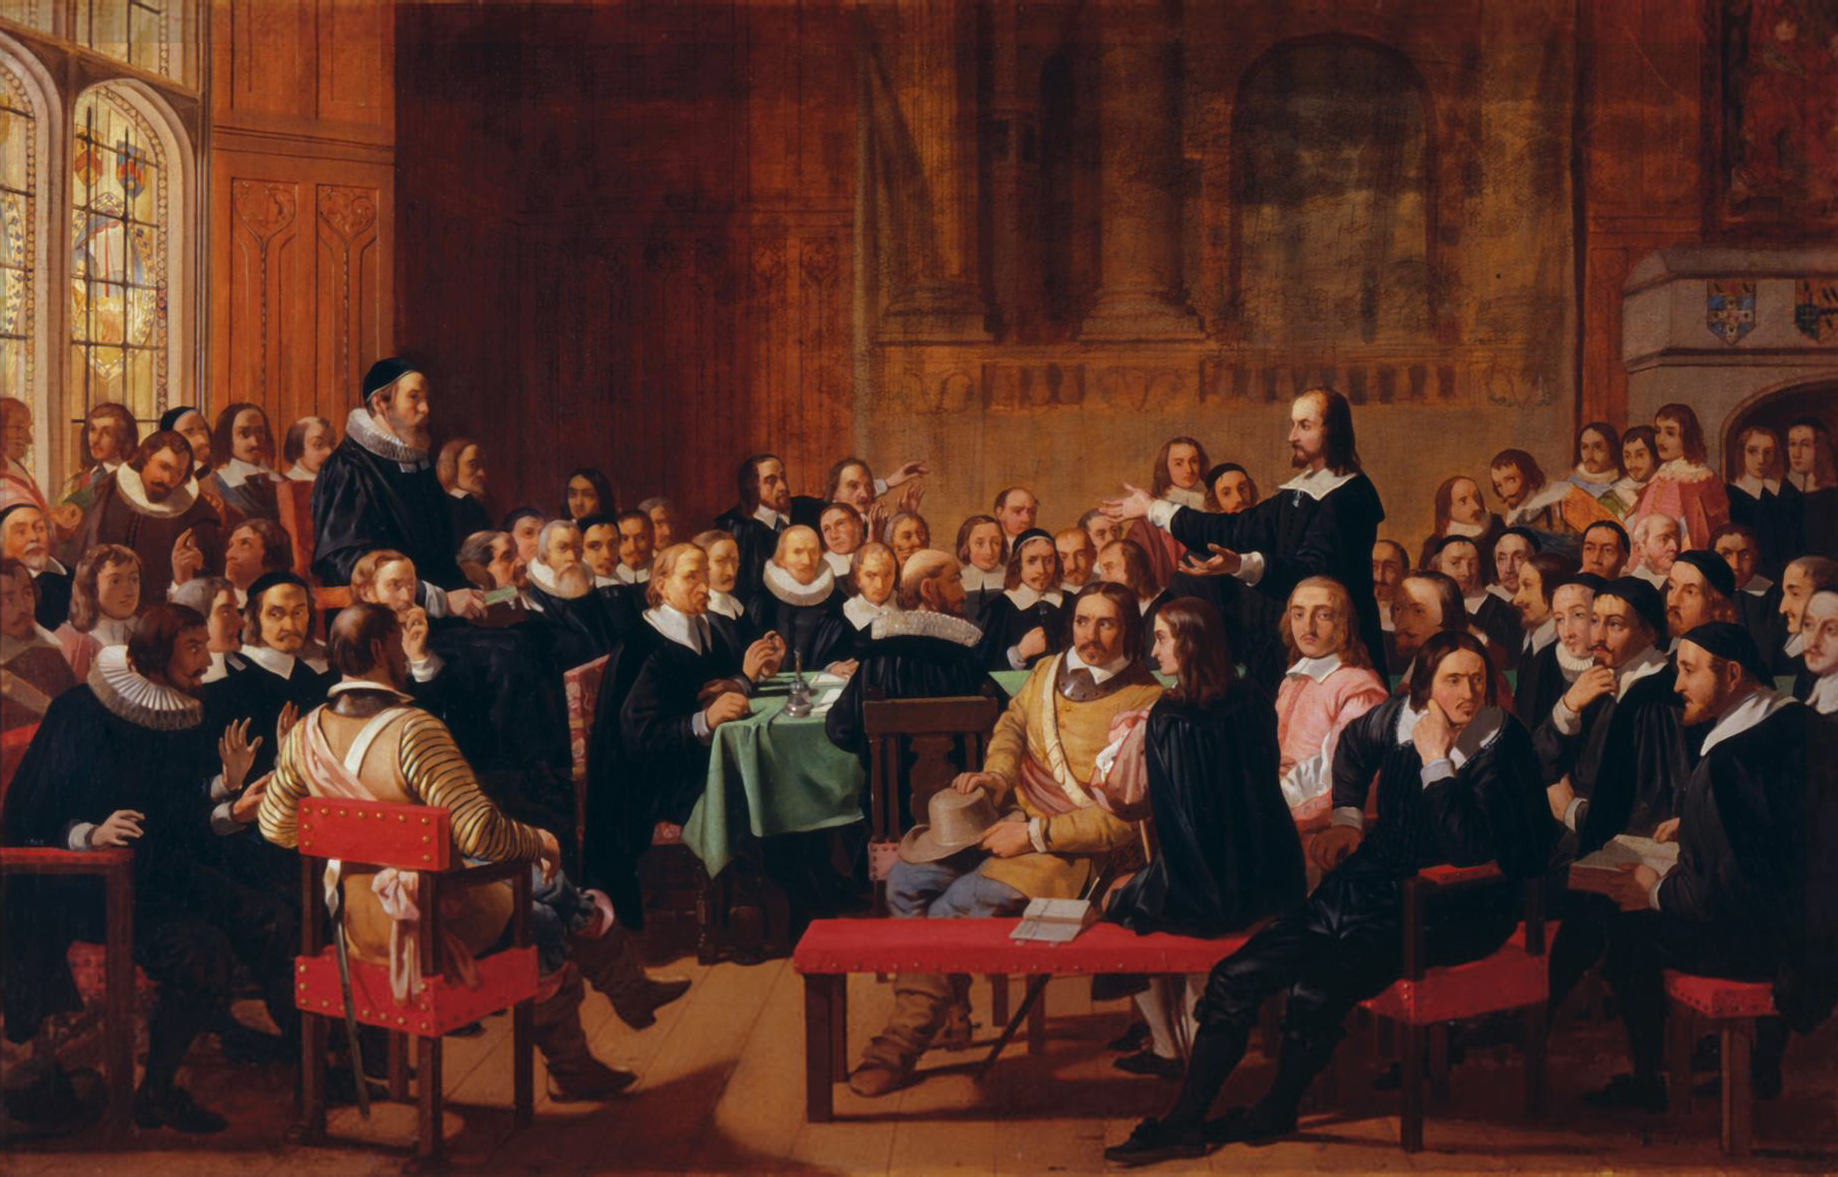 https://upload.wikimedia.org/wikipedia/commons/7/7c/Assertion_of_Liberty_of_Conscience_by_the_Independents_of_the_Westminster_Assembly_of_Divines,_1644.jpg